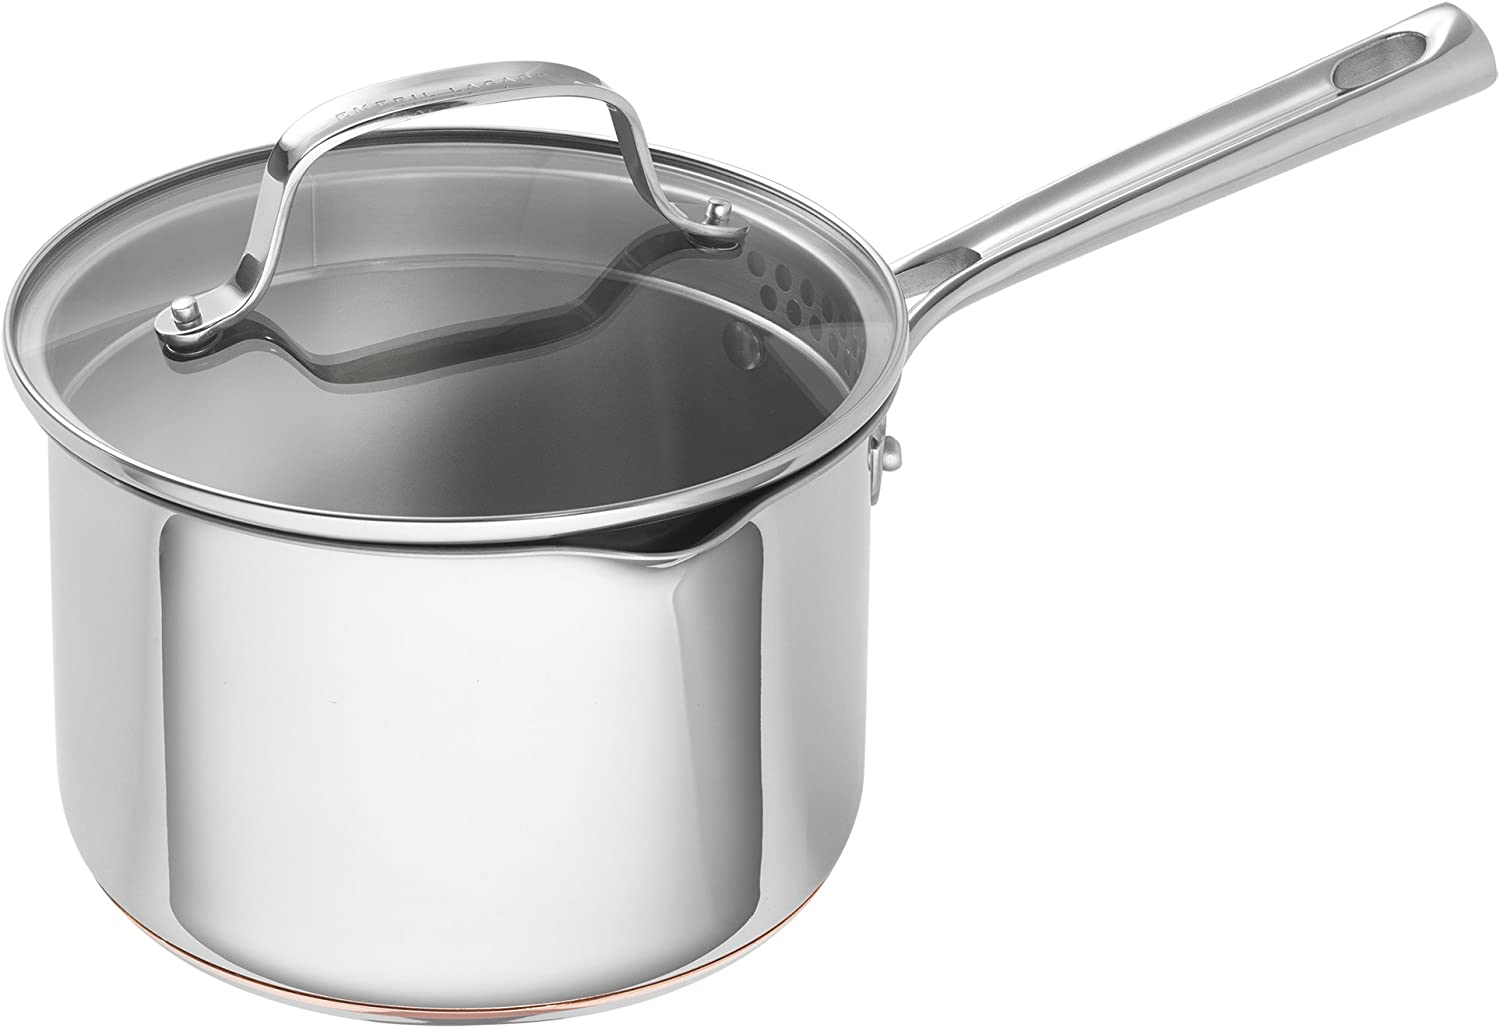 Emeril Lagasse 62897 copper core cookware stock pot, 3 quart, Silver